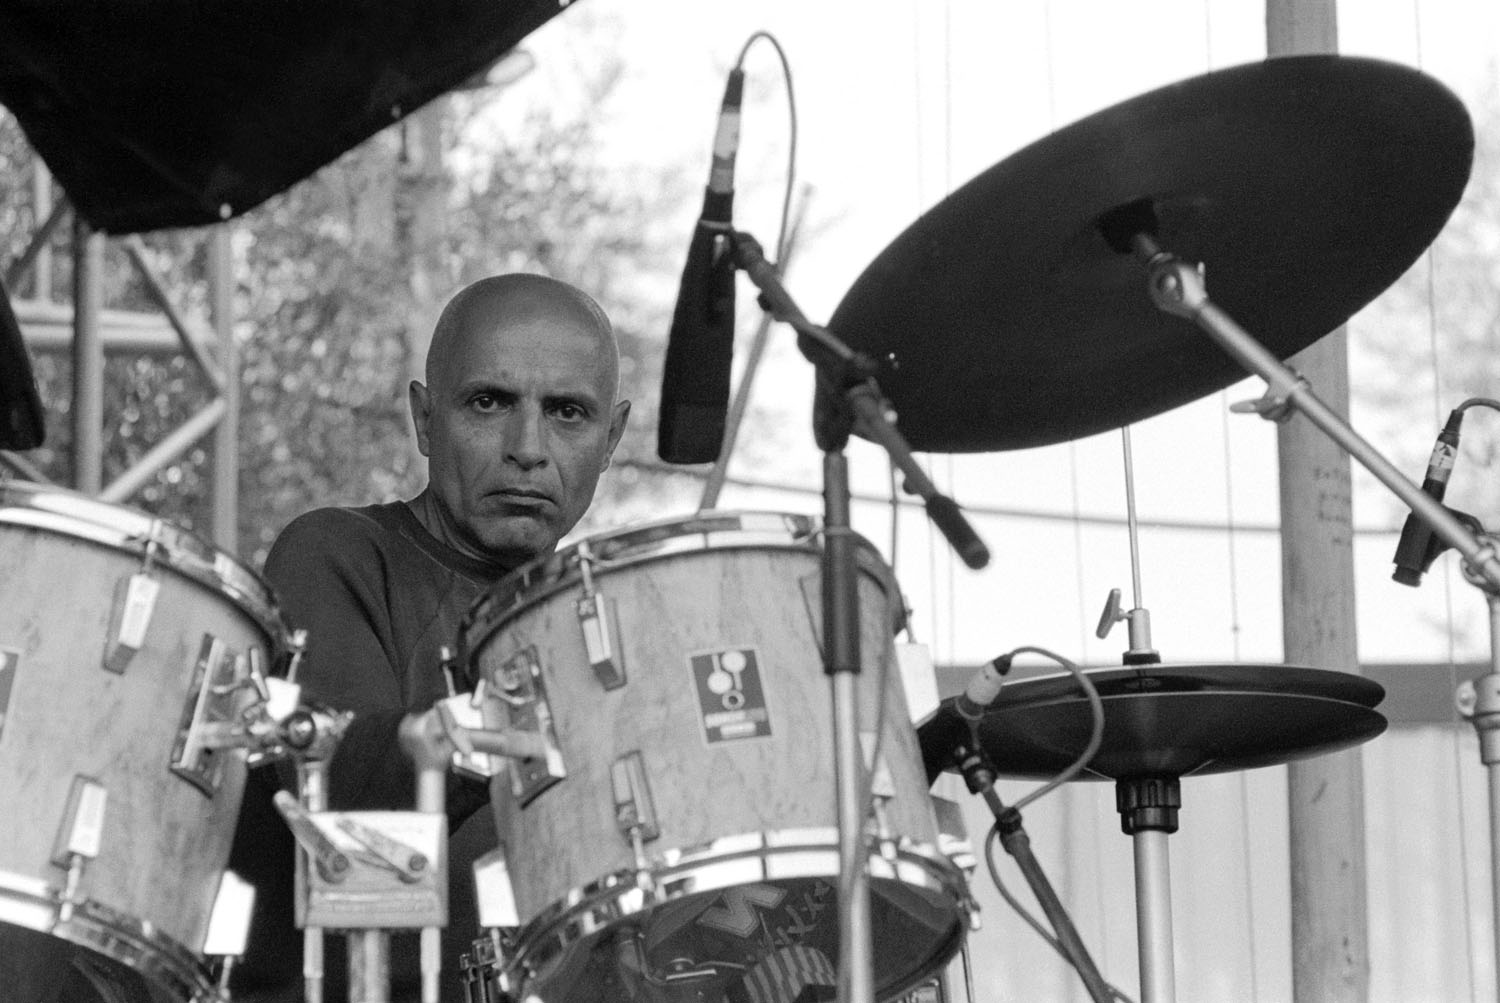 © Paul Motian. All Rights Reserved.